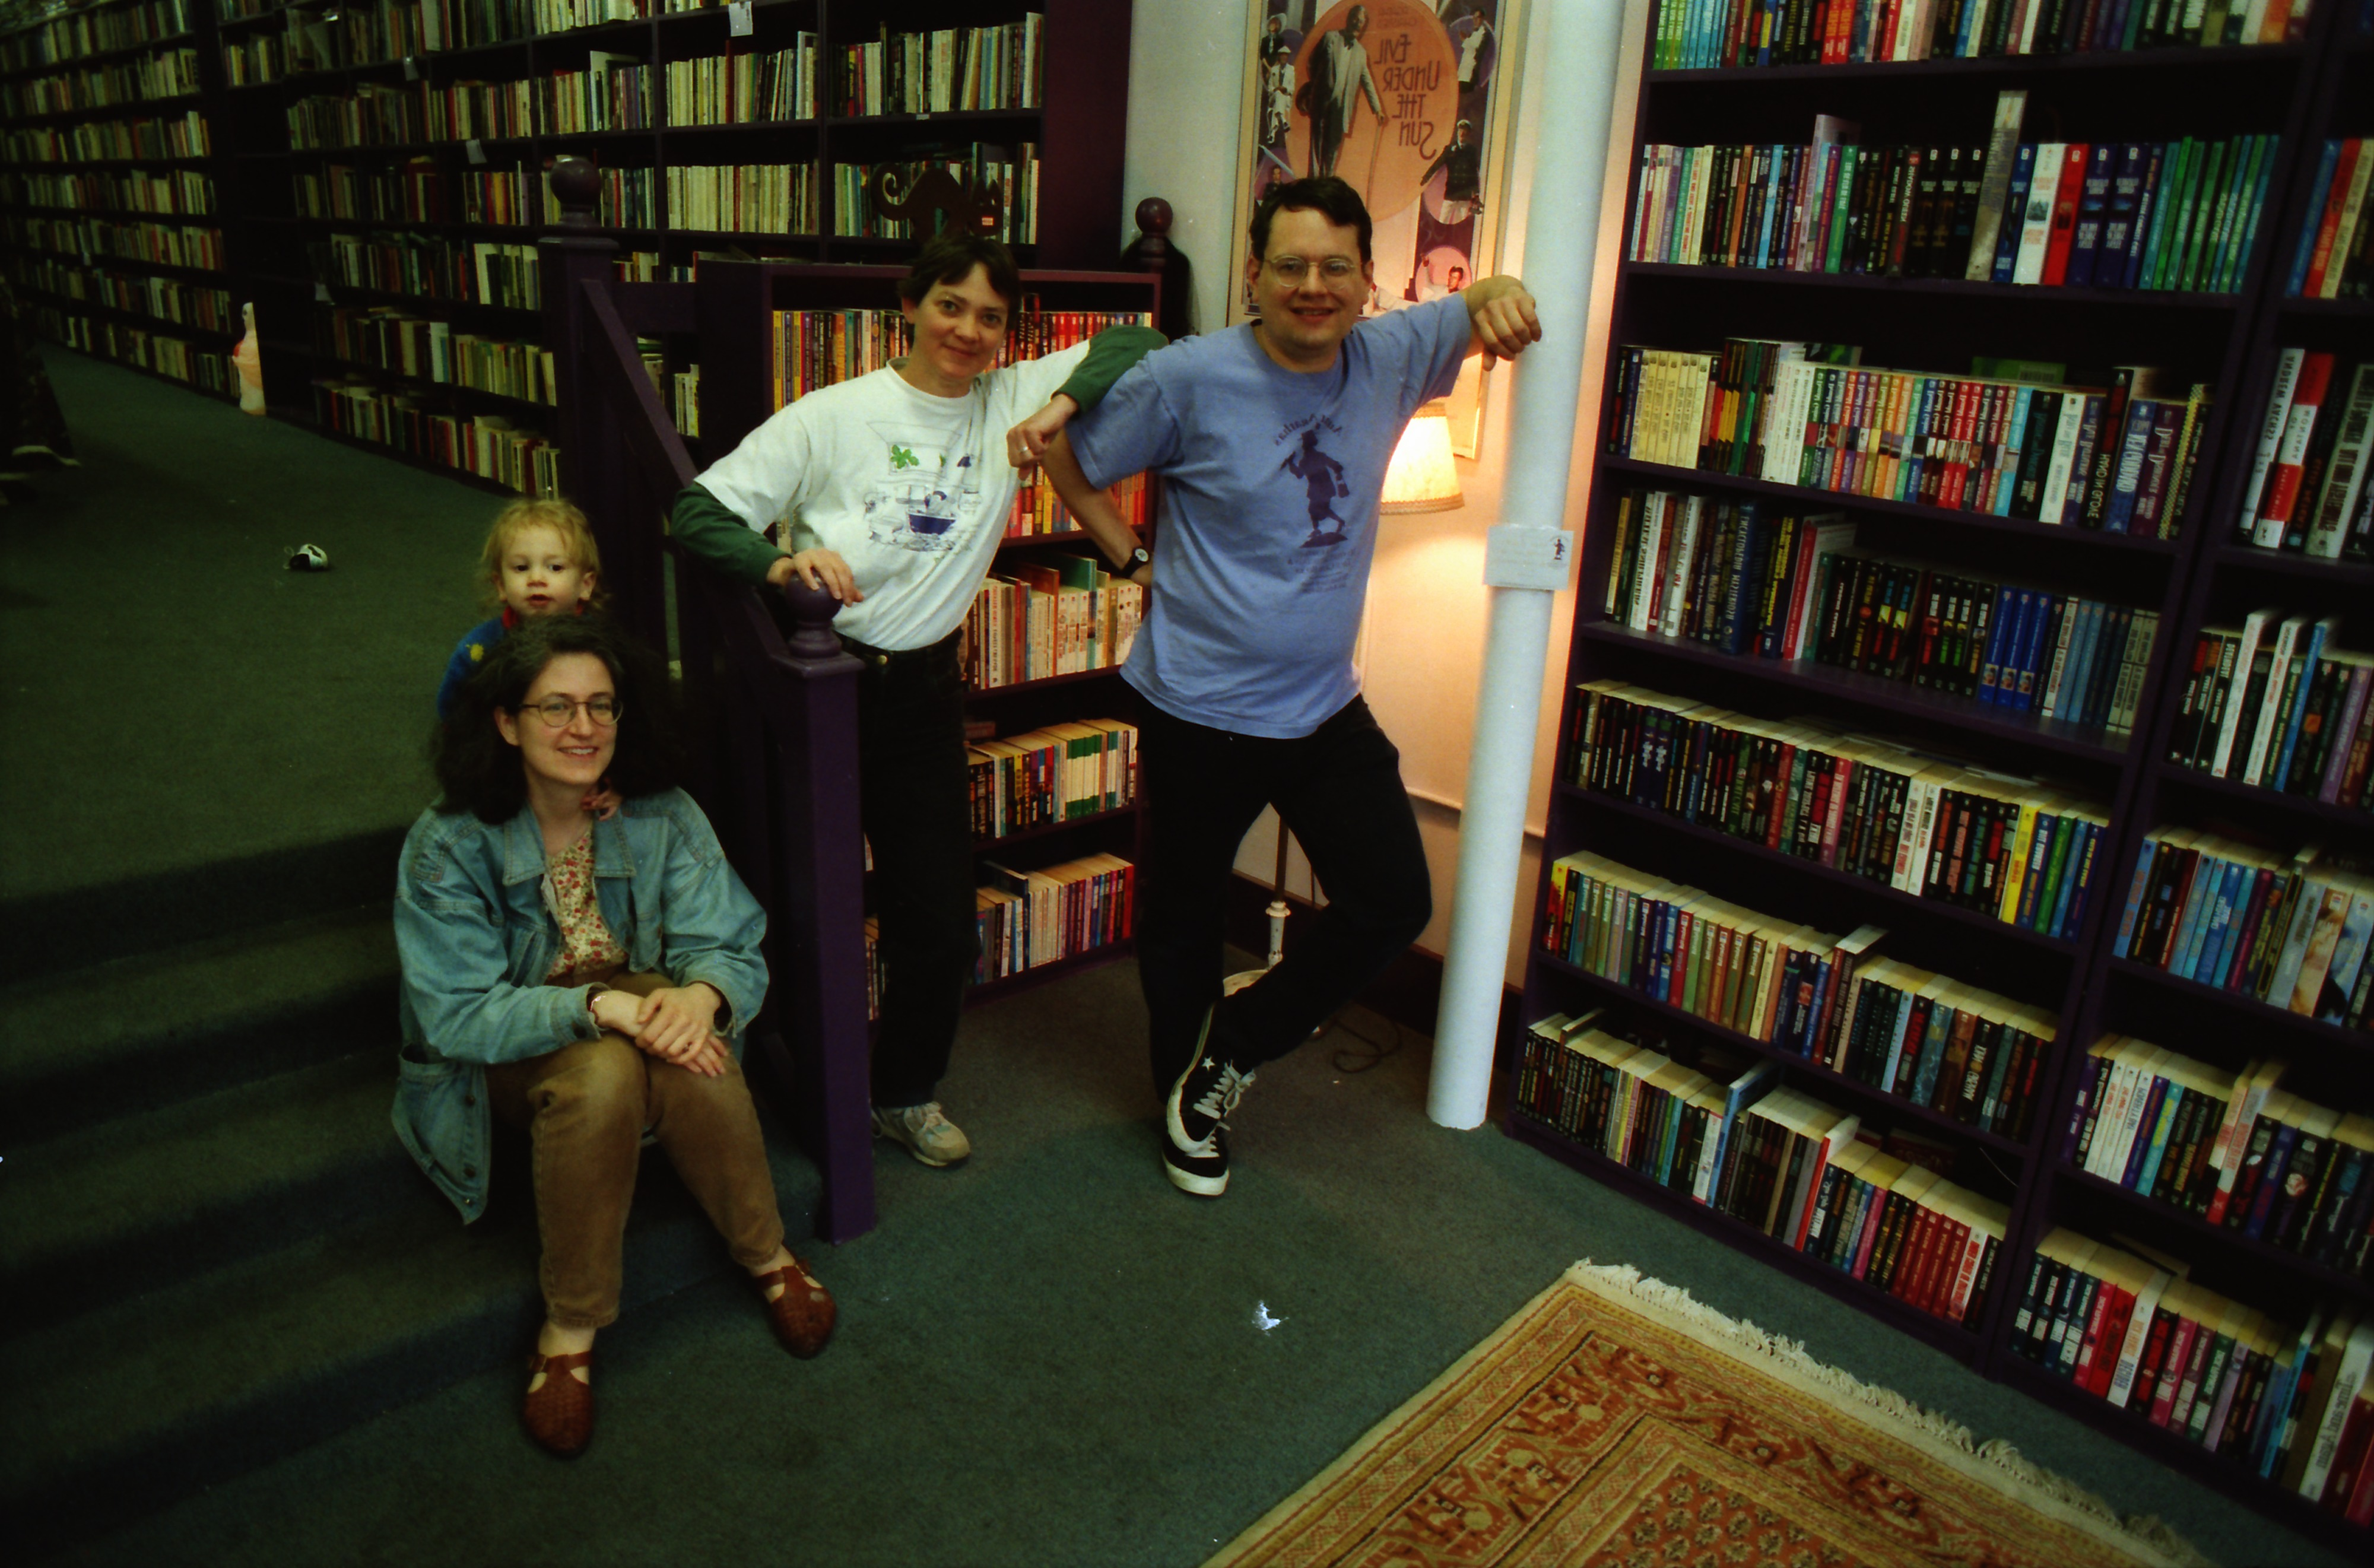 Image from Small Bookstores in Ann Arbor: Common Language & Aunt Agatha's, April 1995